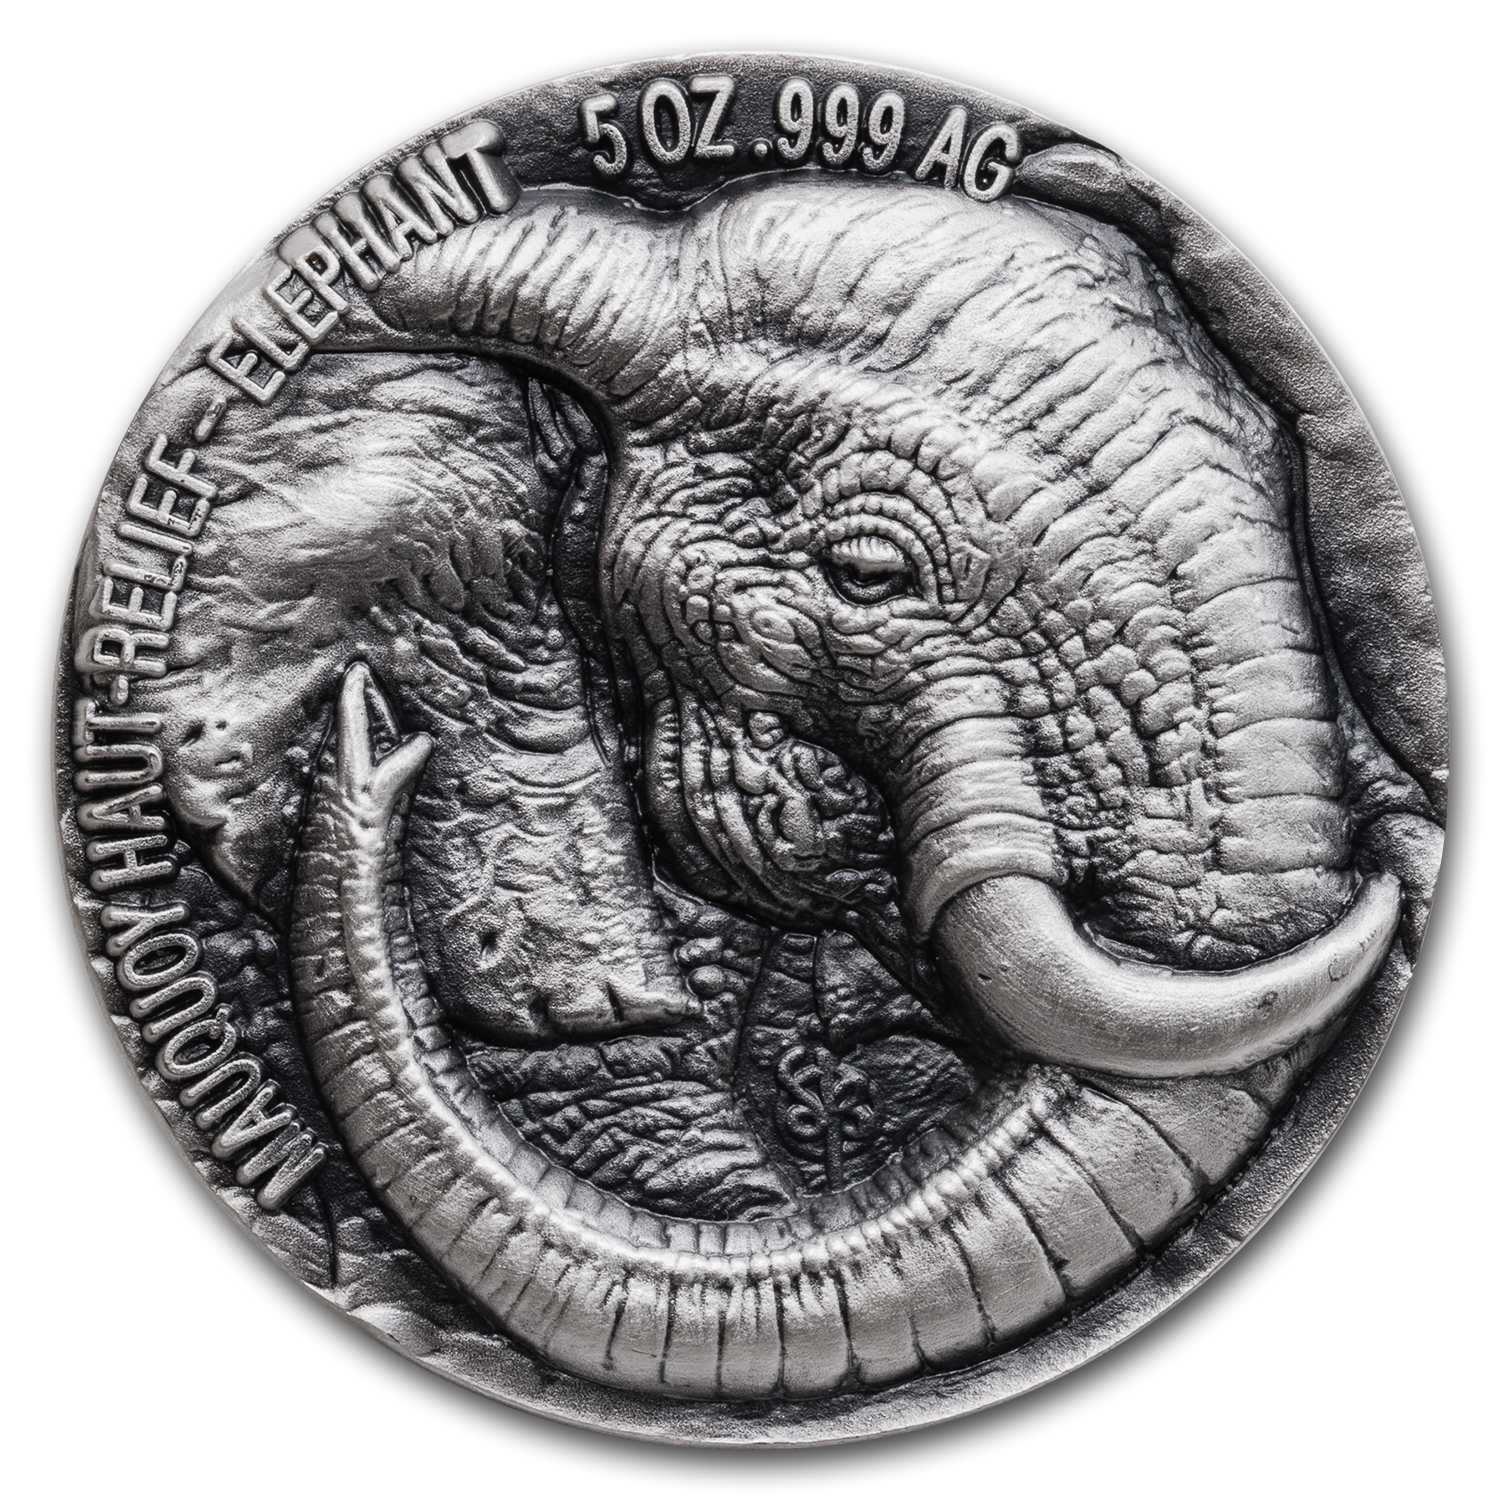 2017 Ivory Coast 5 oz Silver 5000 Fr Mauquoy Haut Relief Elephant